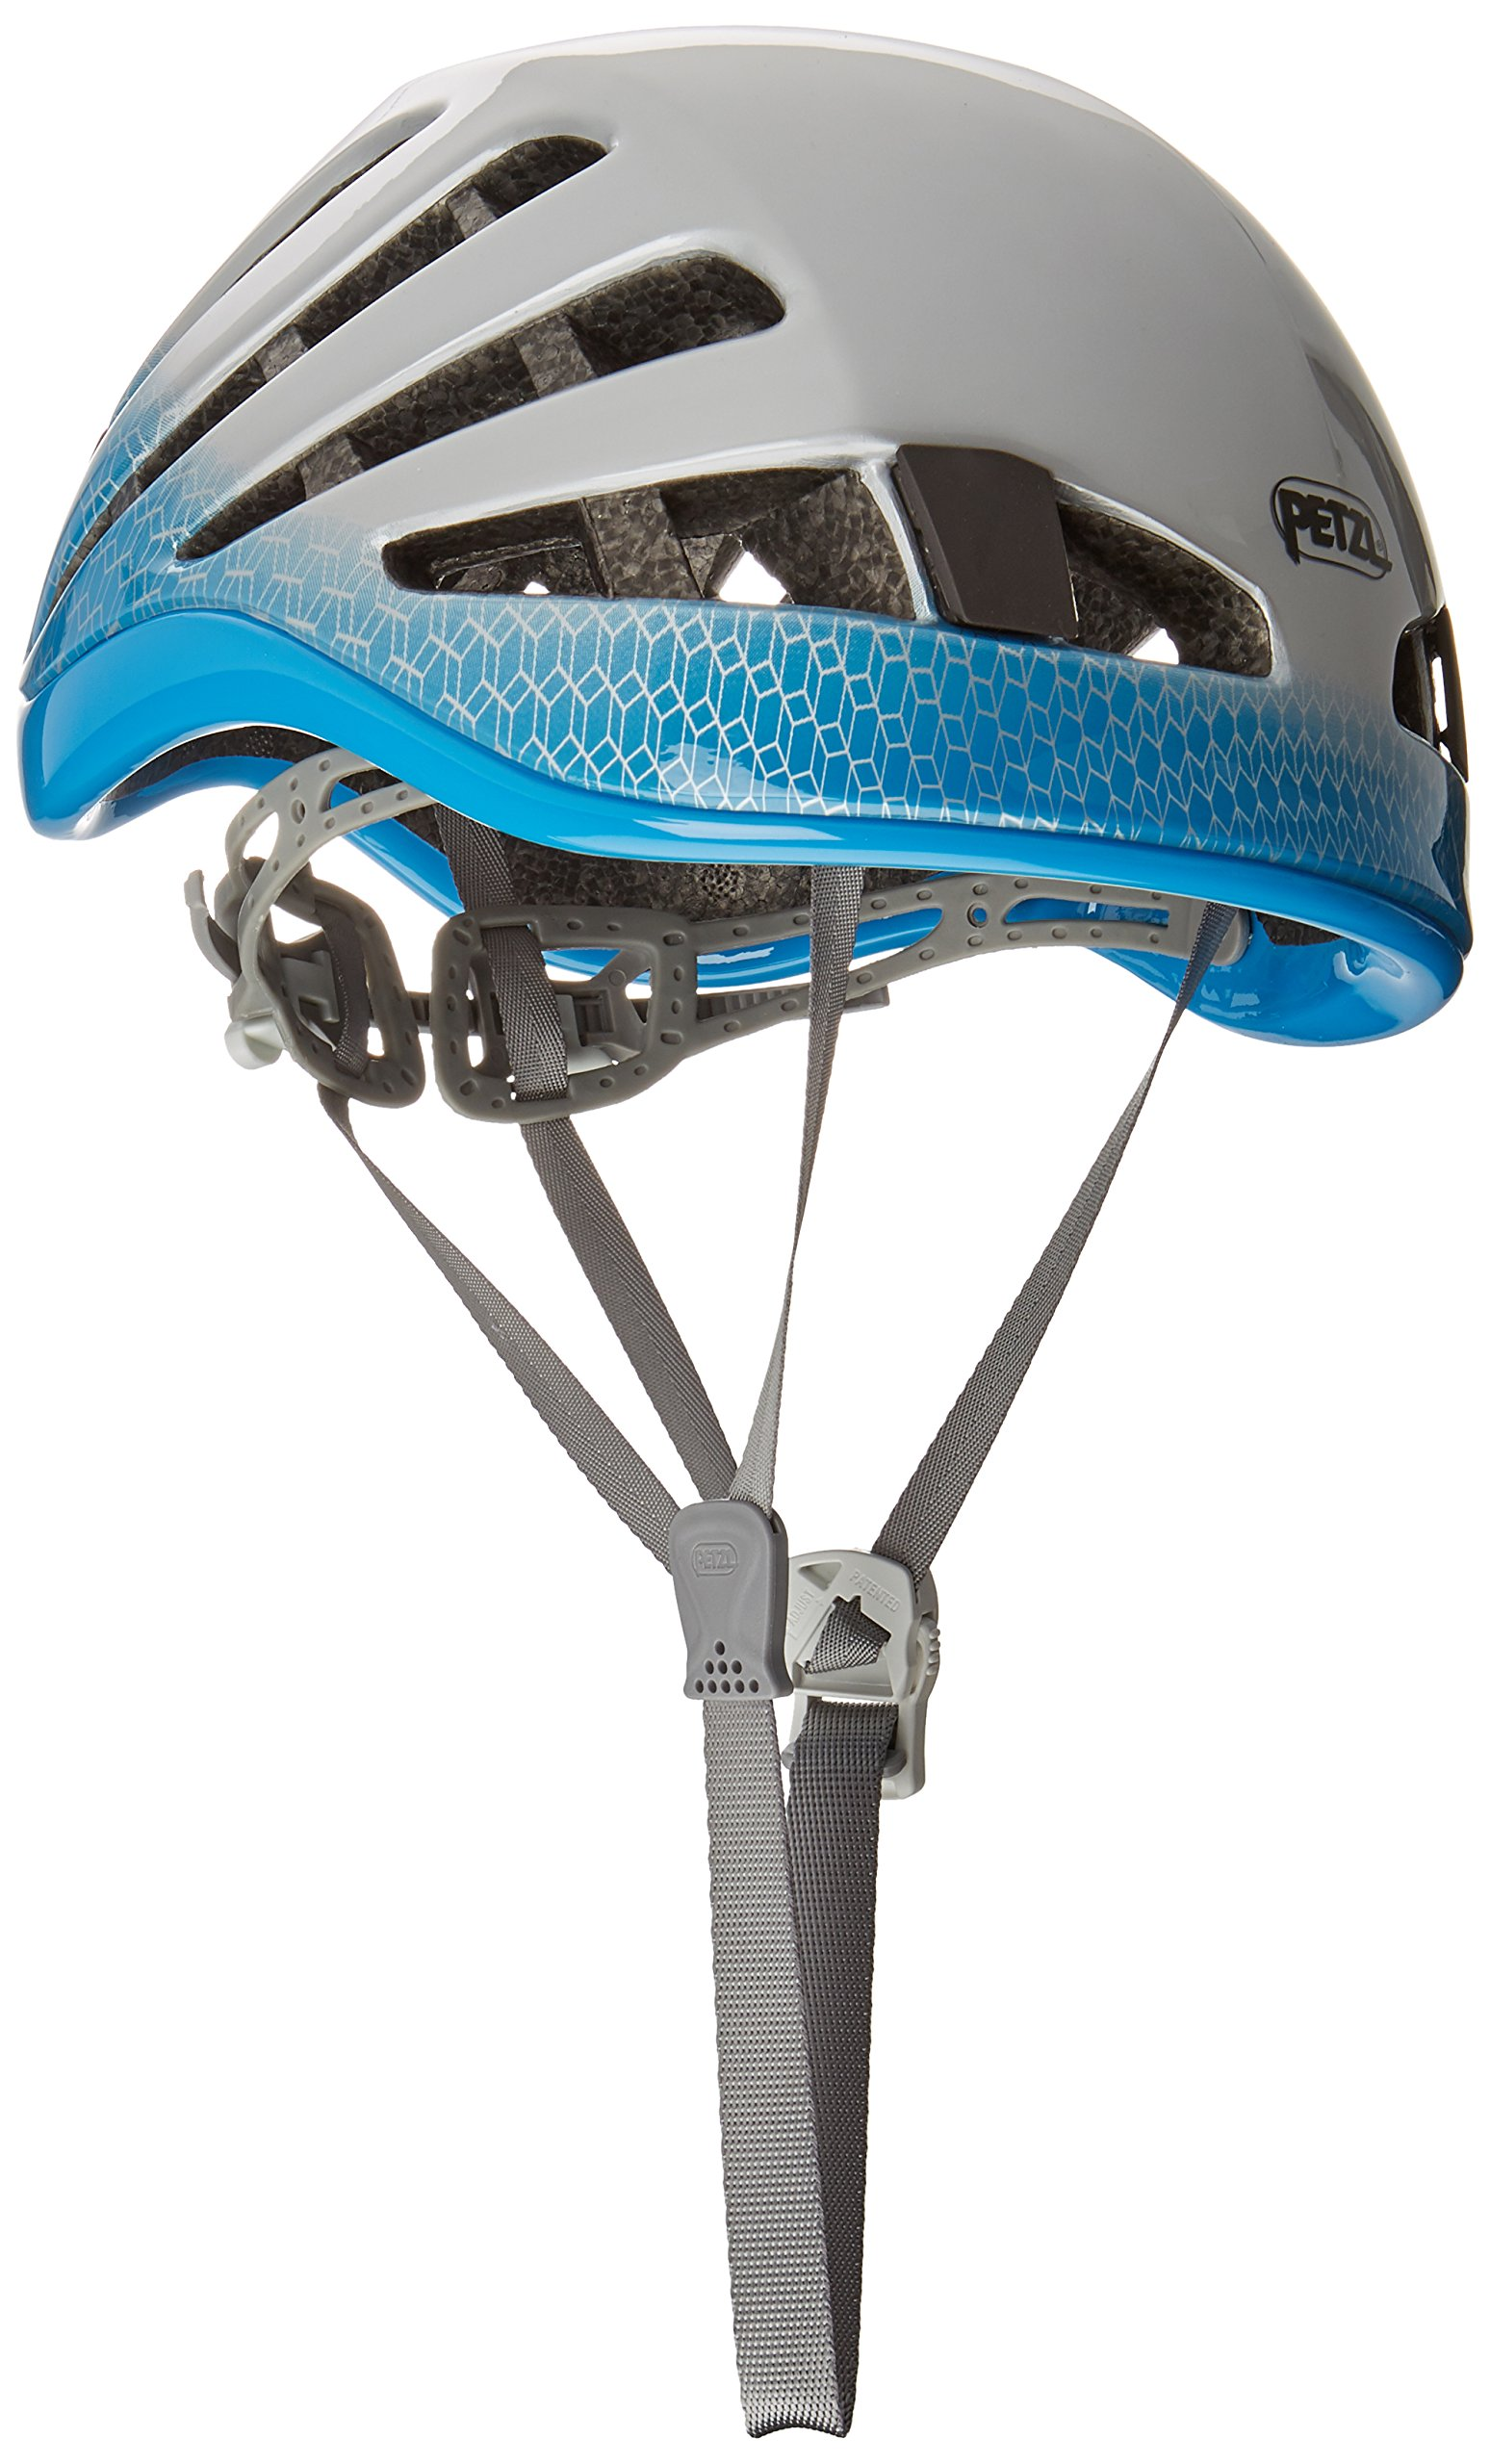 PETZL - Meteor, Lightweight and Versatile Helmet, Size 2, Blue by PETZL